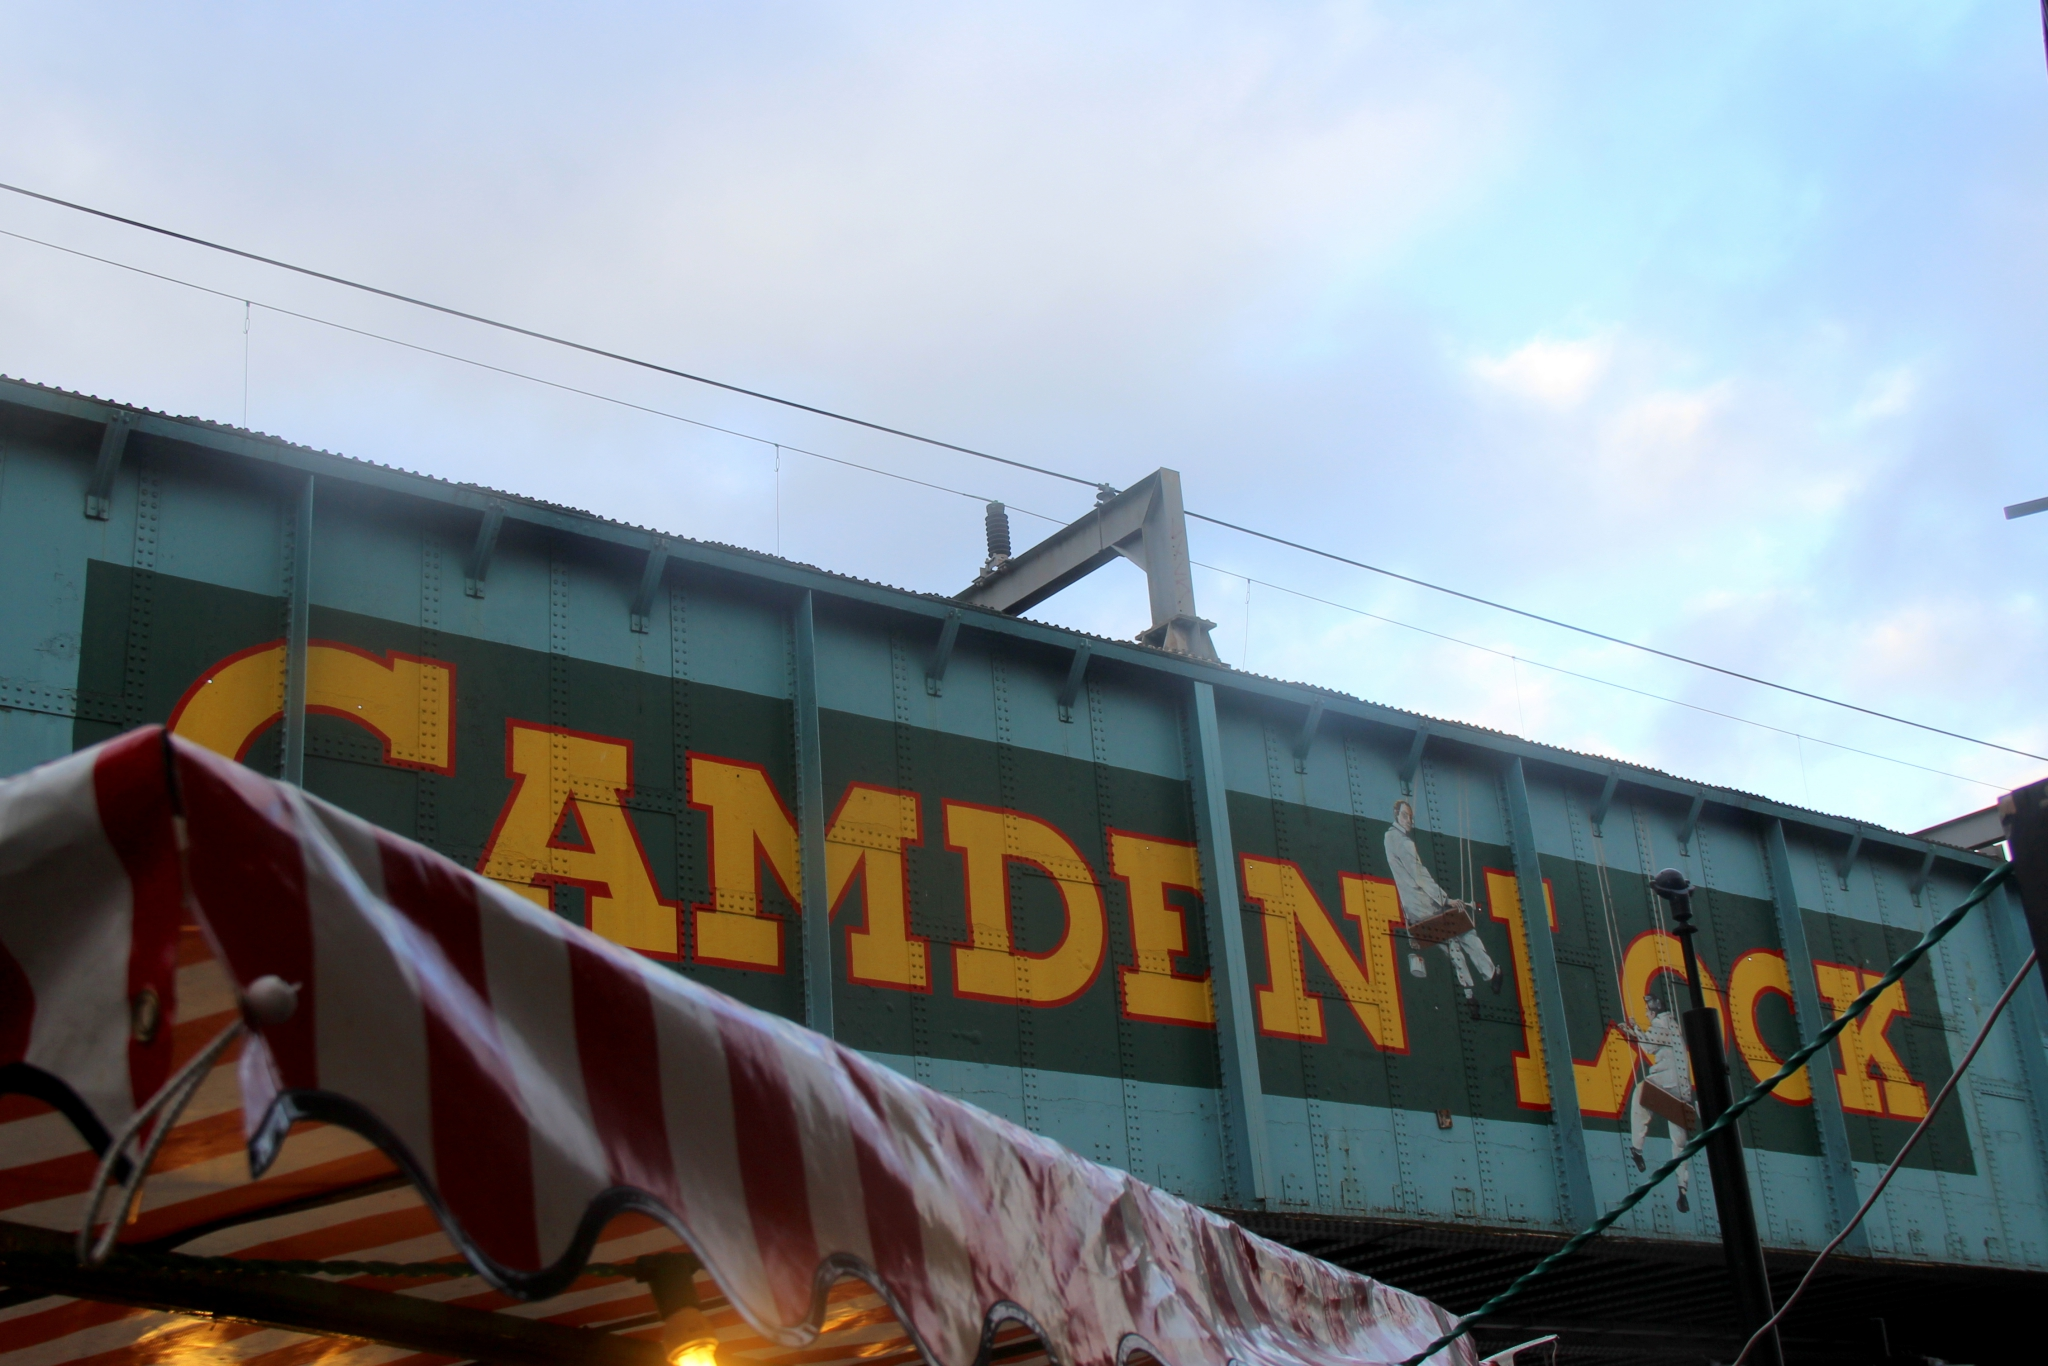 Travel: London Daily Diary 1 - Camden Lock Market - MRS. BRIGHTSIDE ...